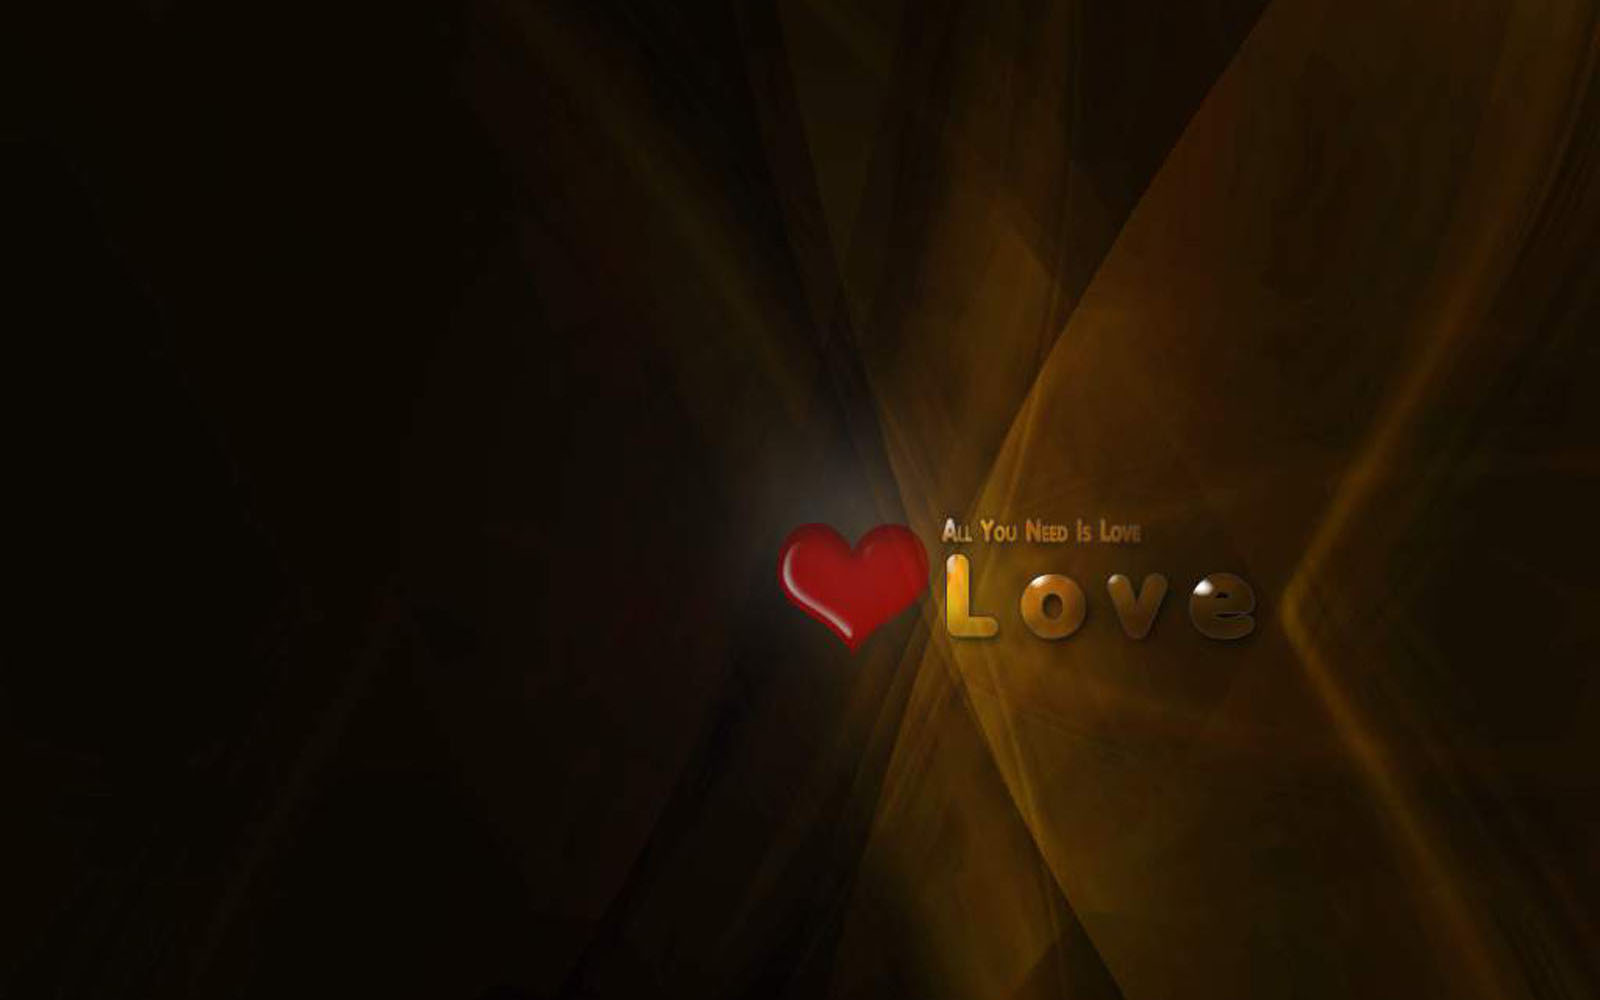 Hd wallpaper you need - All You Need Is Love Wallpapers